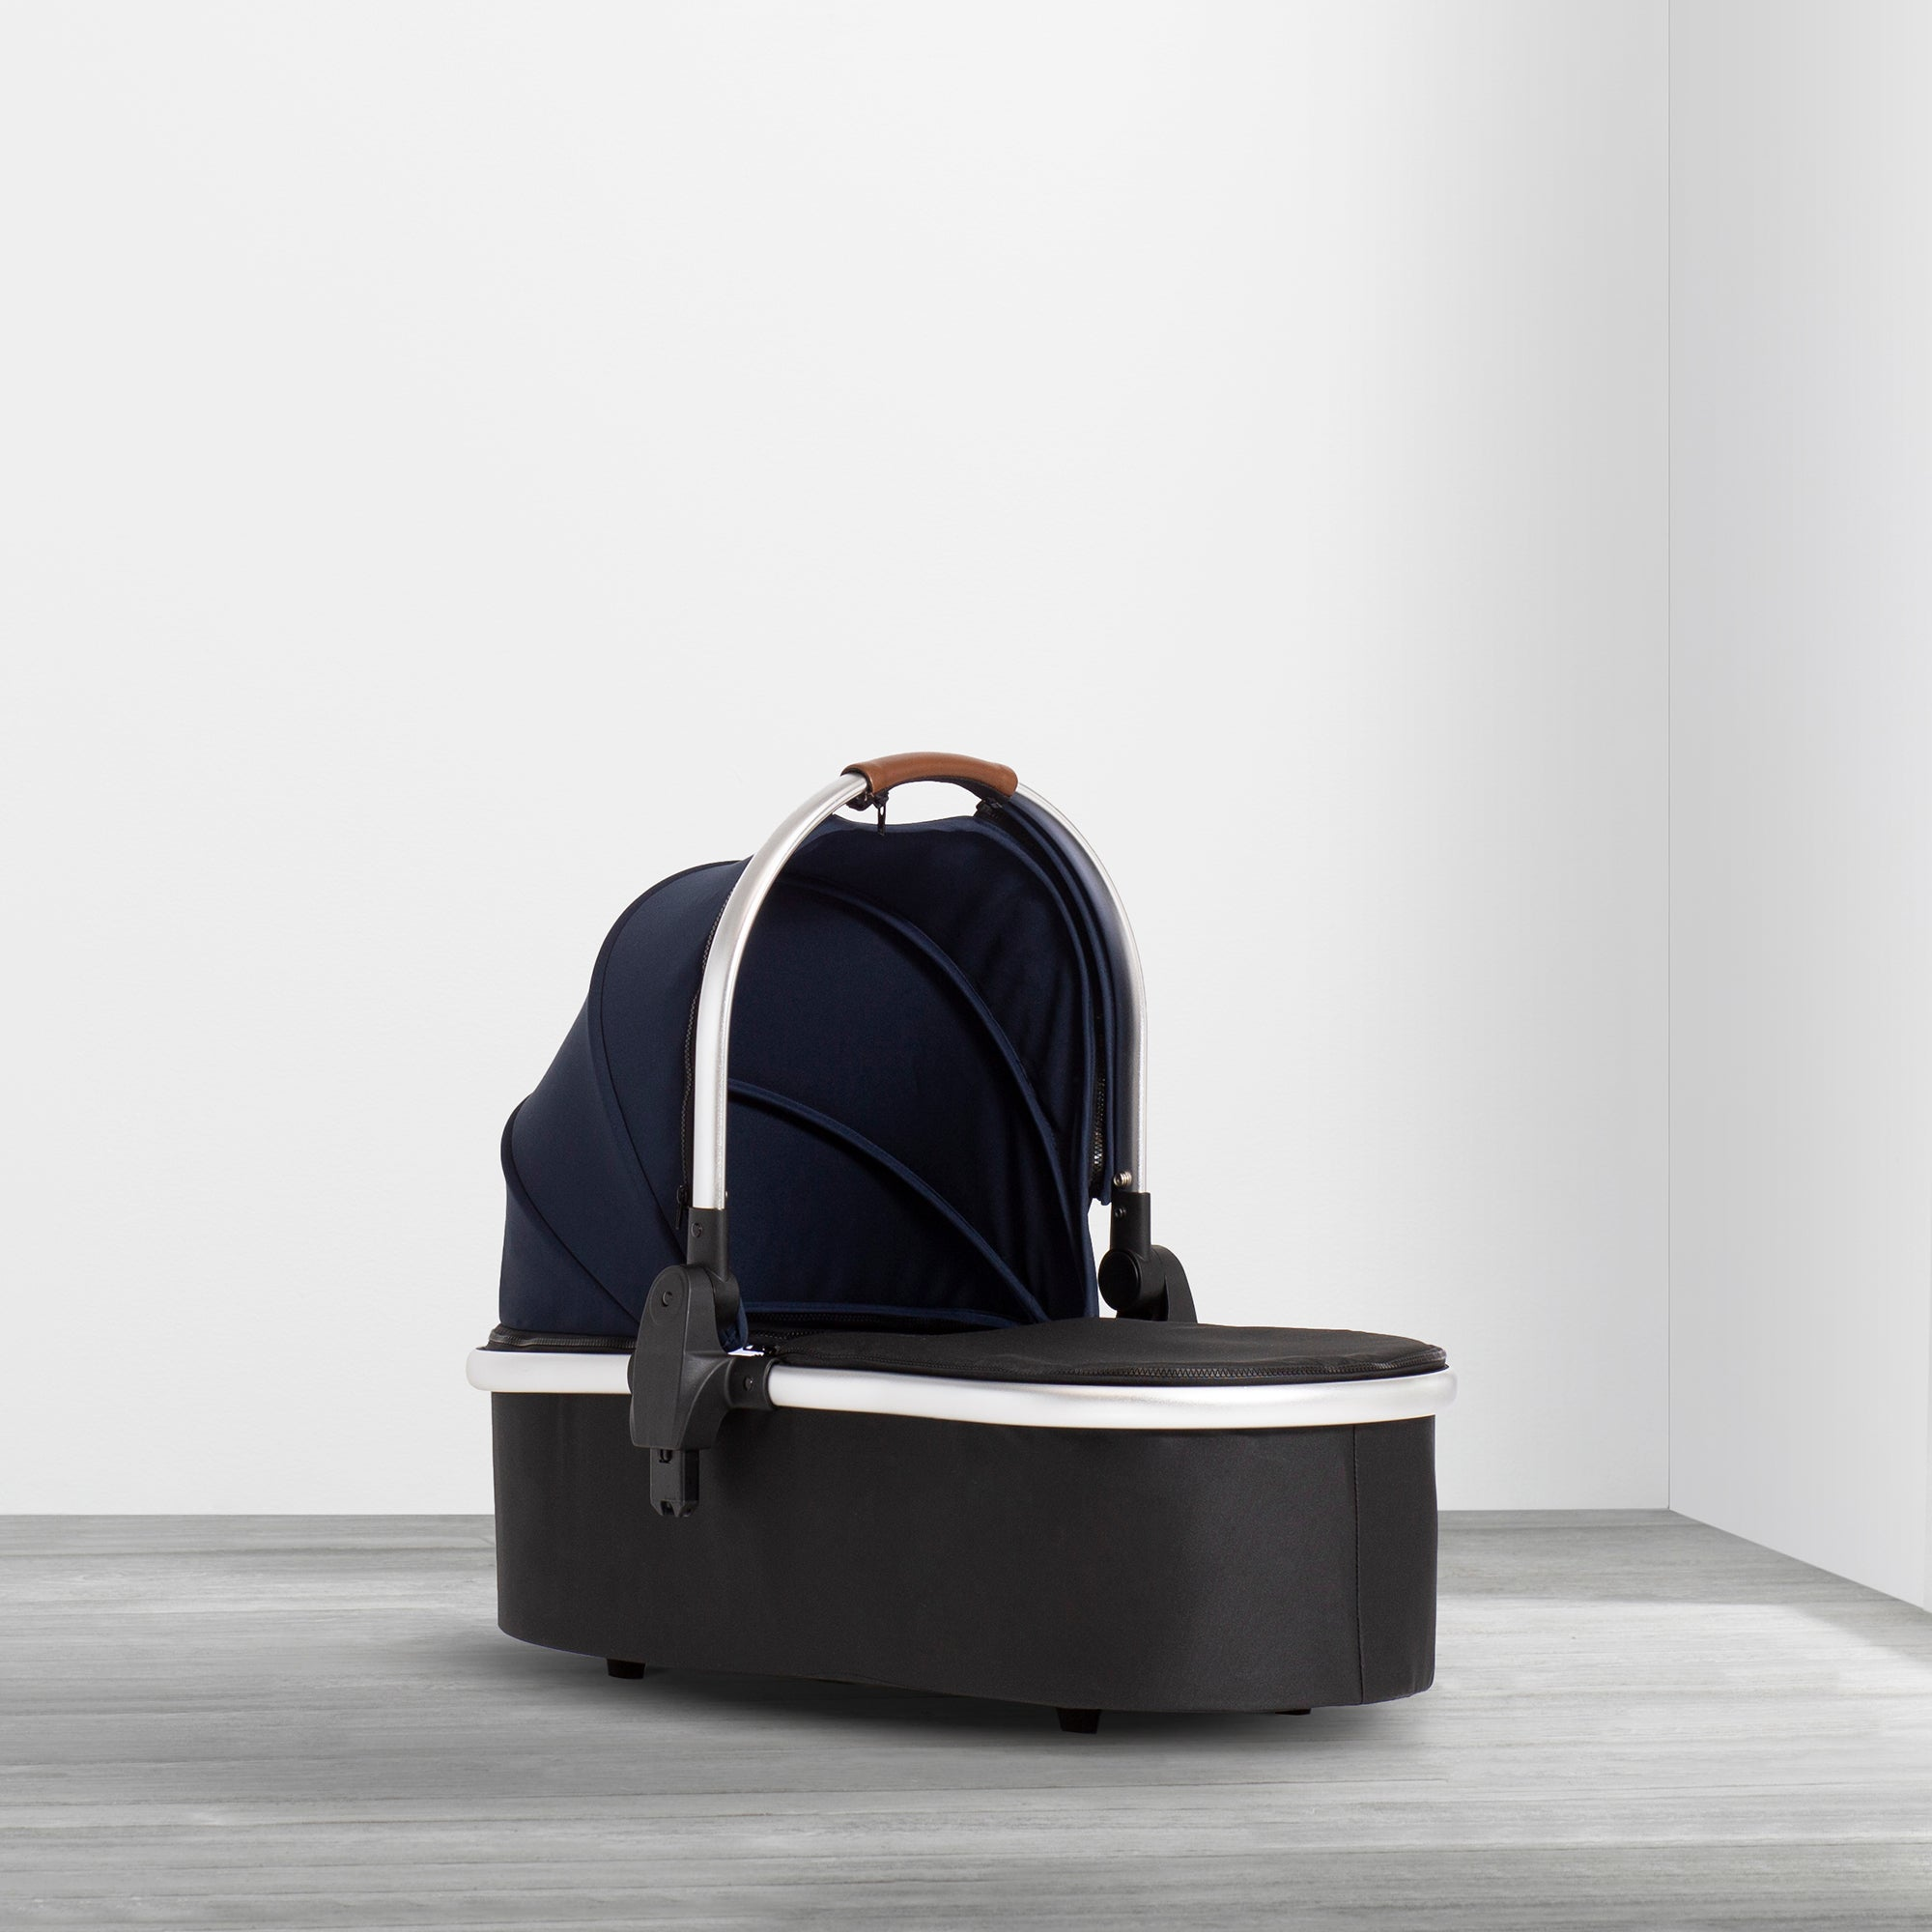 Revolve Carriage/Pram Add-On